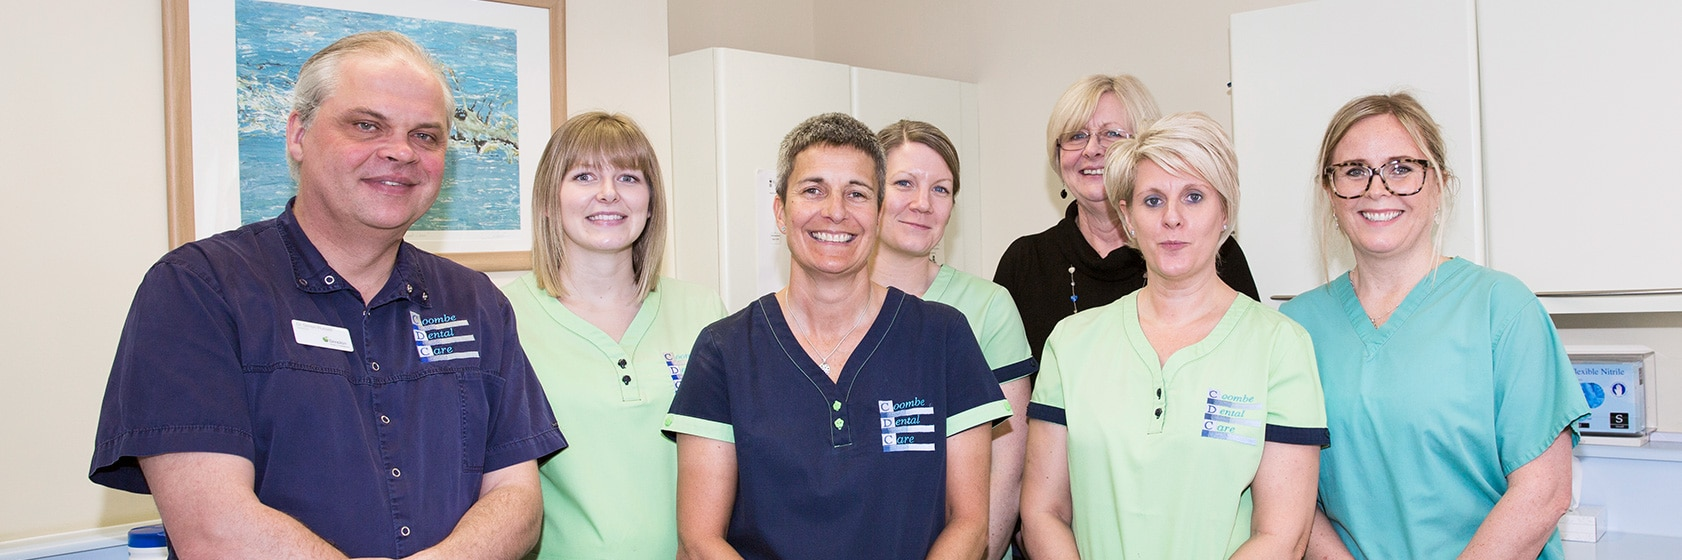 Coombe Dental Care staff group pic